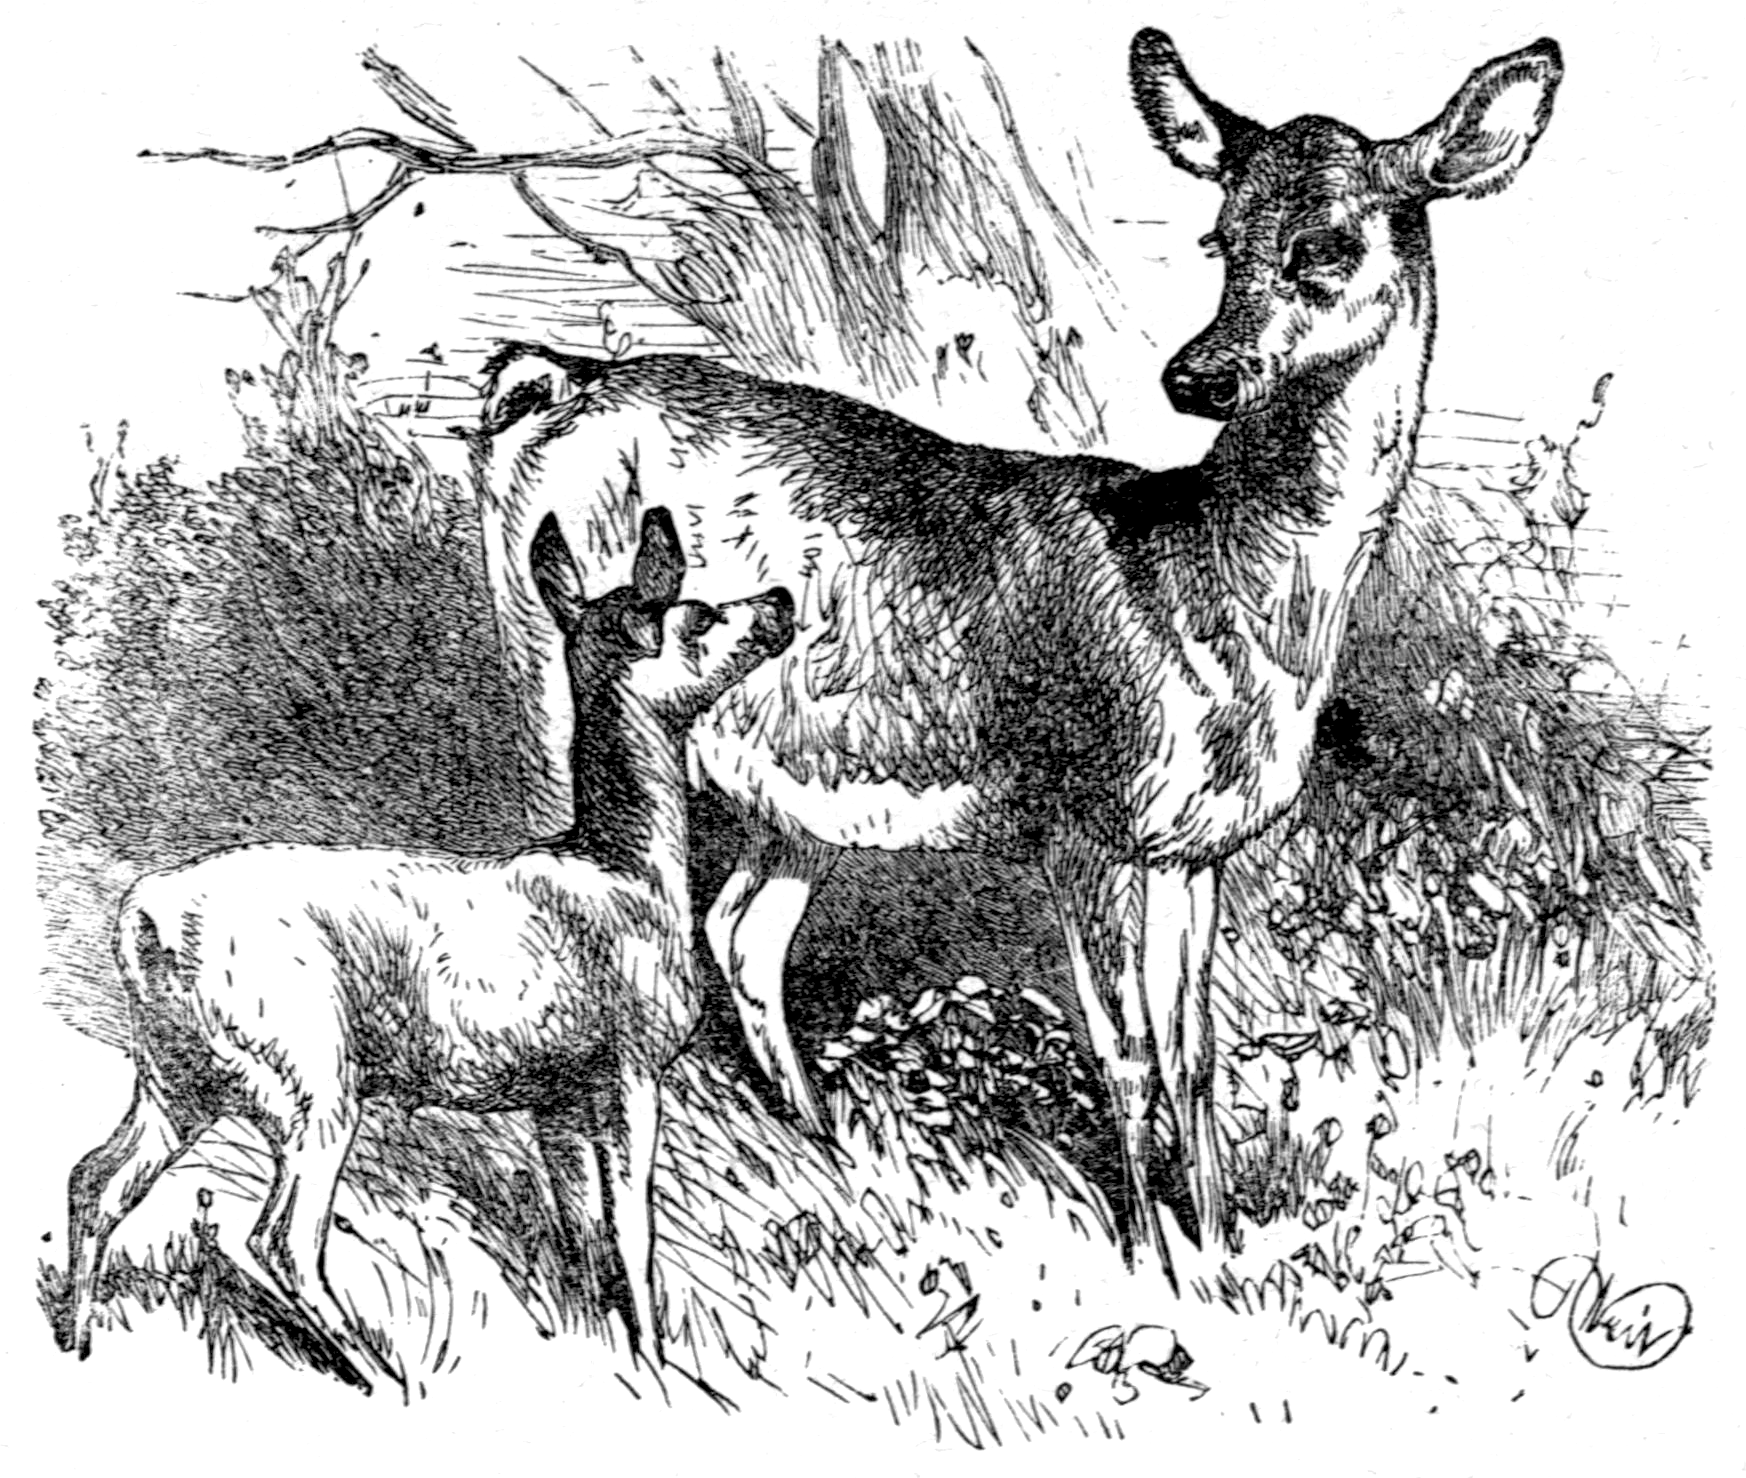 File:Page 41 illustration to Three hundred Aesopu0027s fables (Townsend).png - Fables PNG